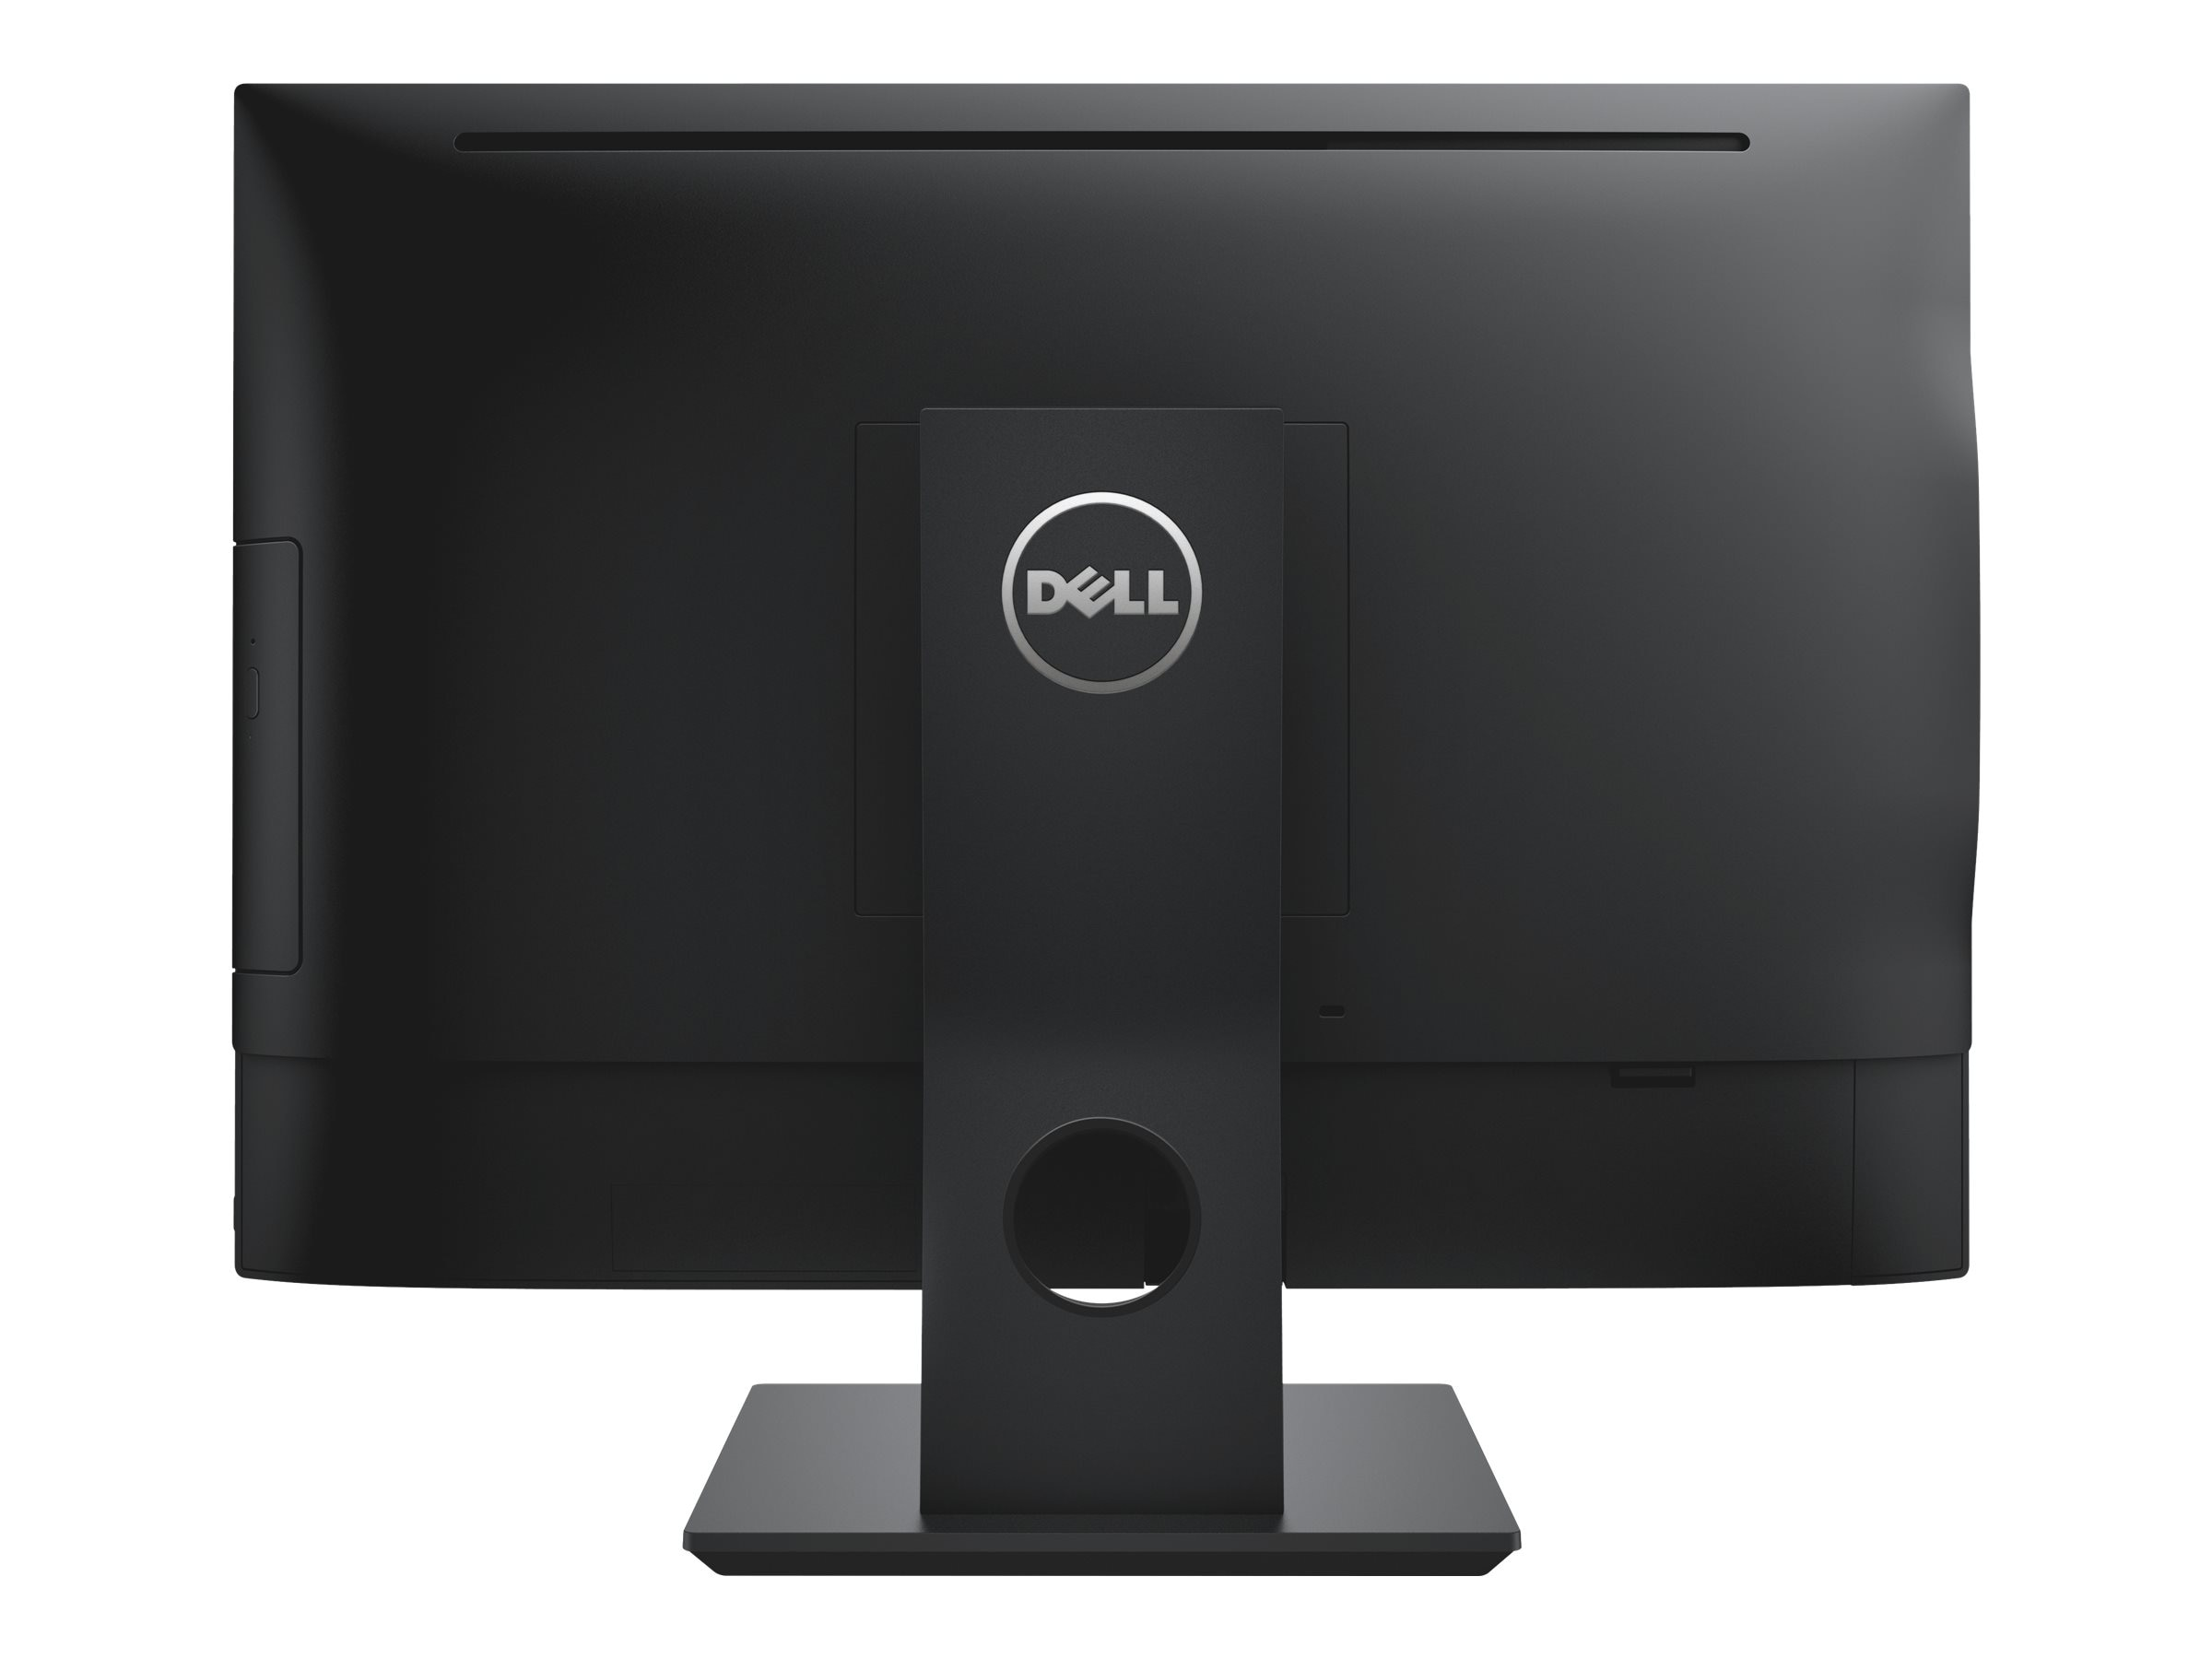 Dell OptiPlex 3240 AIO Core i5-6500 3.2GHz 8GB 128GB SSD DVD+RW GbE ac BT 21.5 FHD W10P64, C6GT7